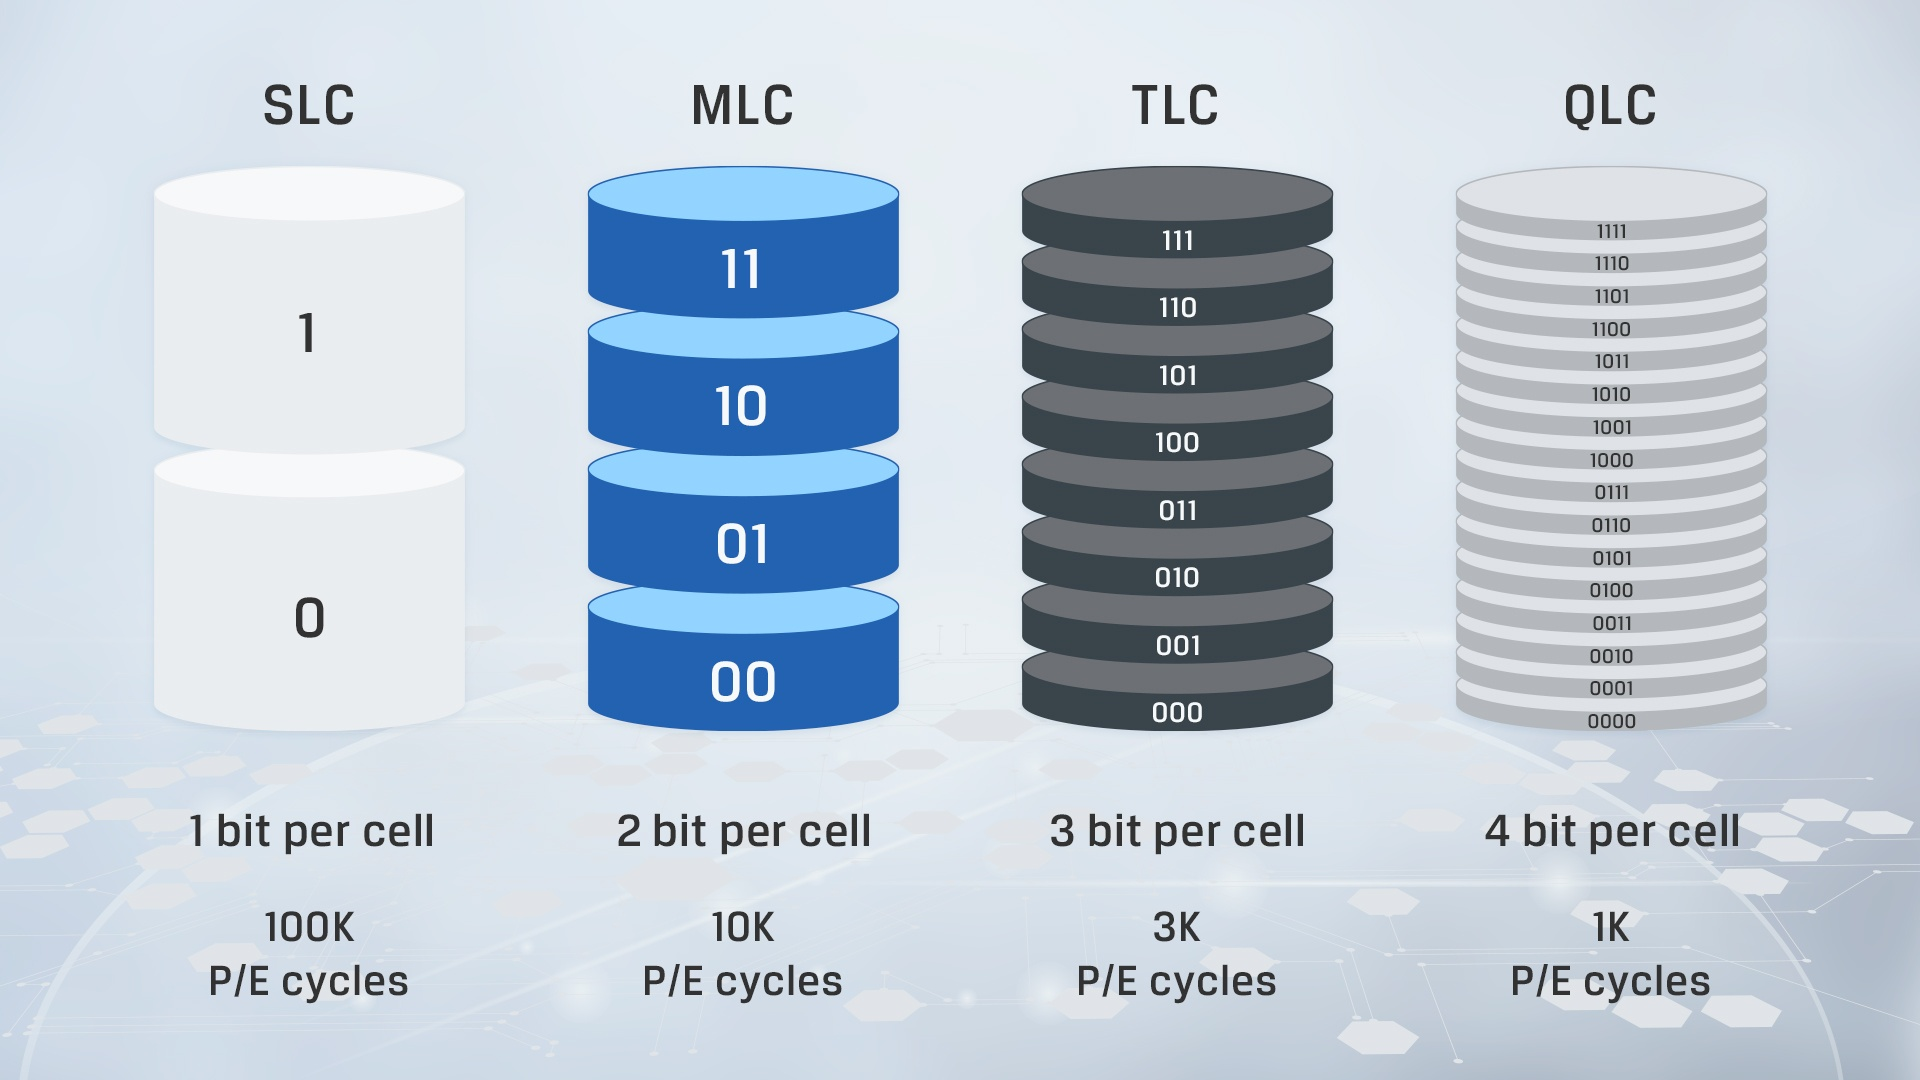 an infographic showing key differences between the different types of NAND